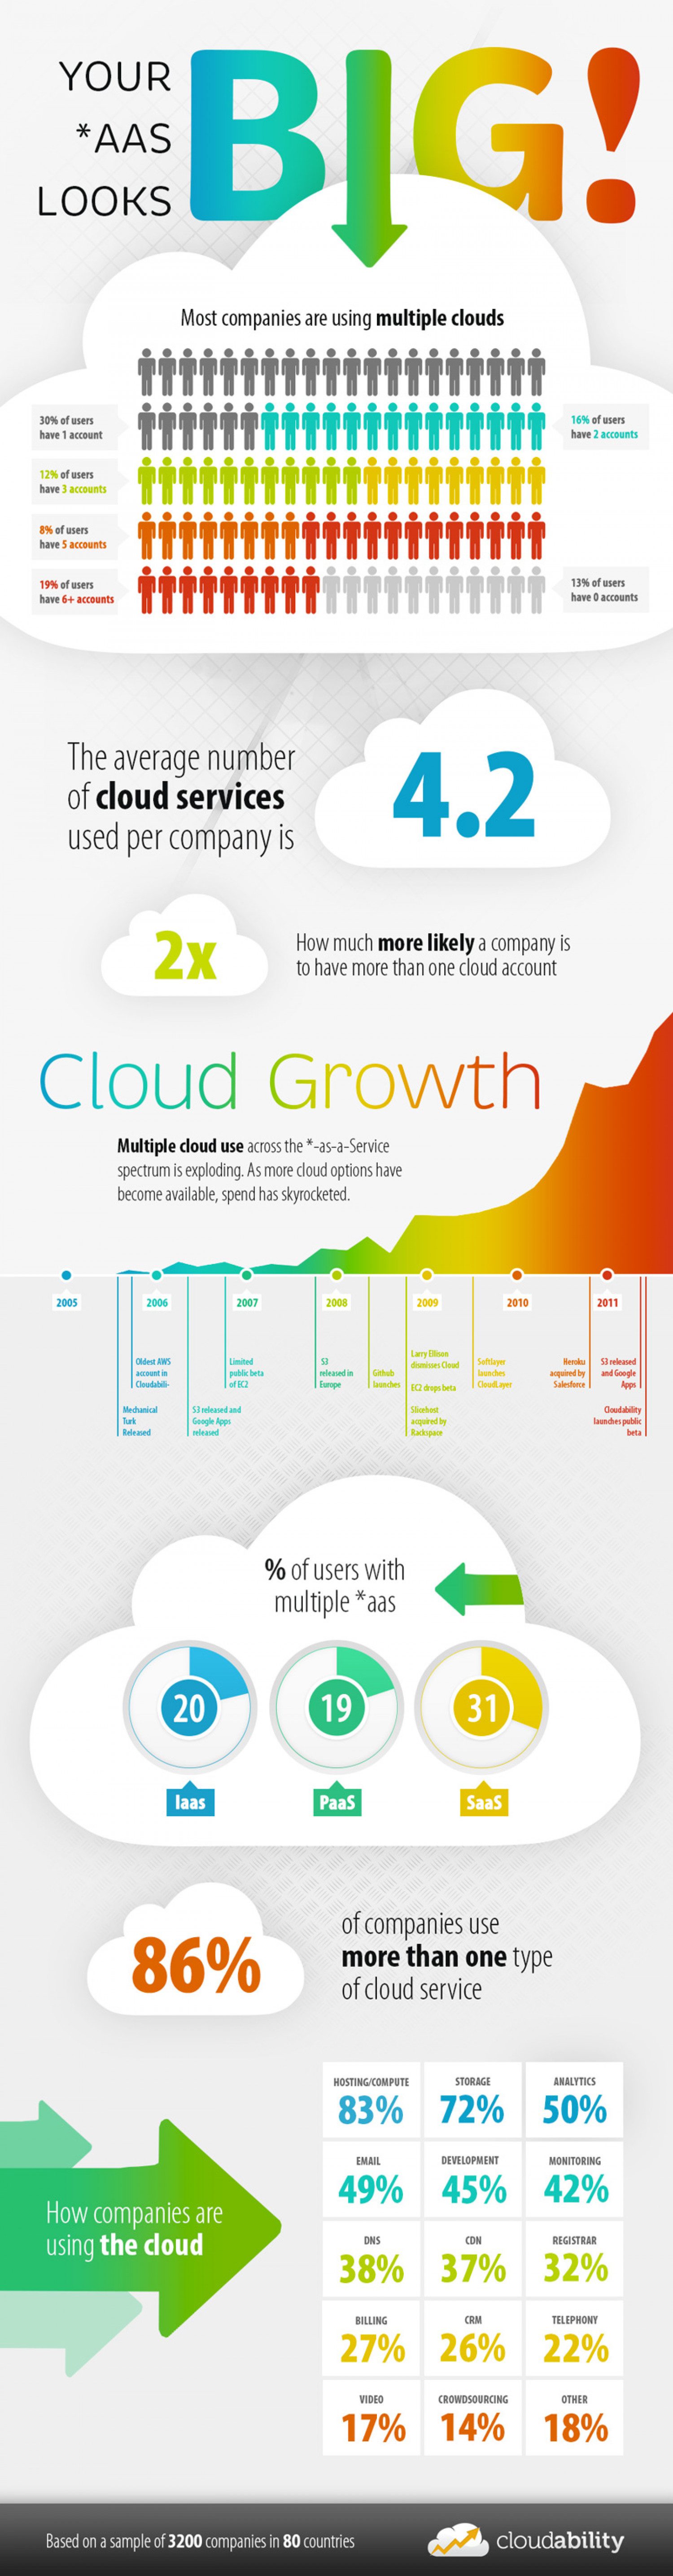 Your *aaS Looks Big! Infographic